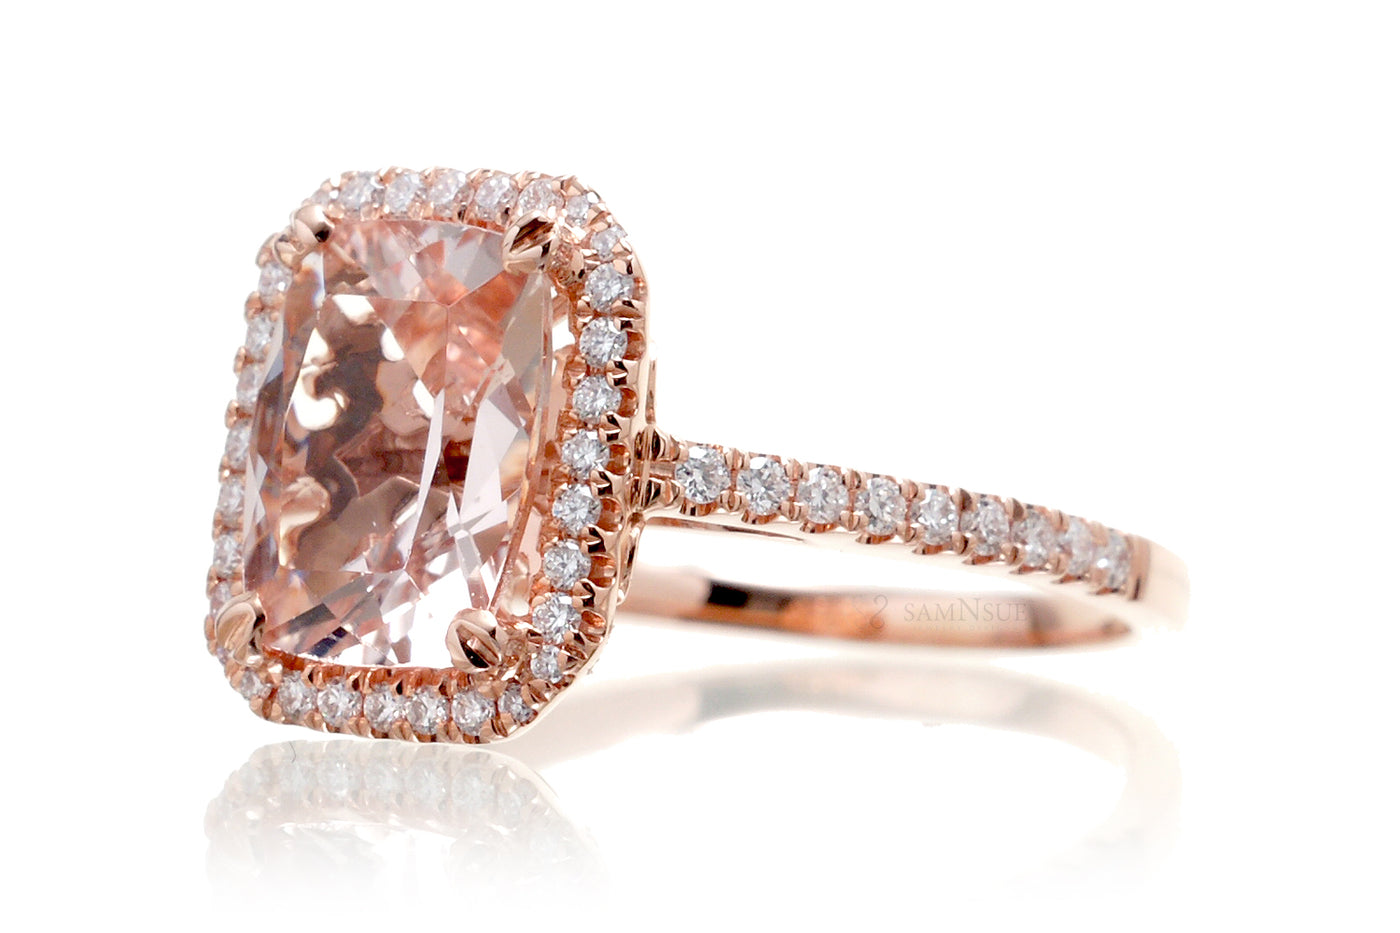 Morganite 11x9 cushion halo diamond solitaire engagement ring 14k rose gold